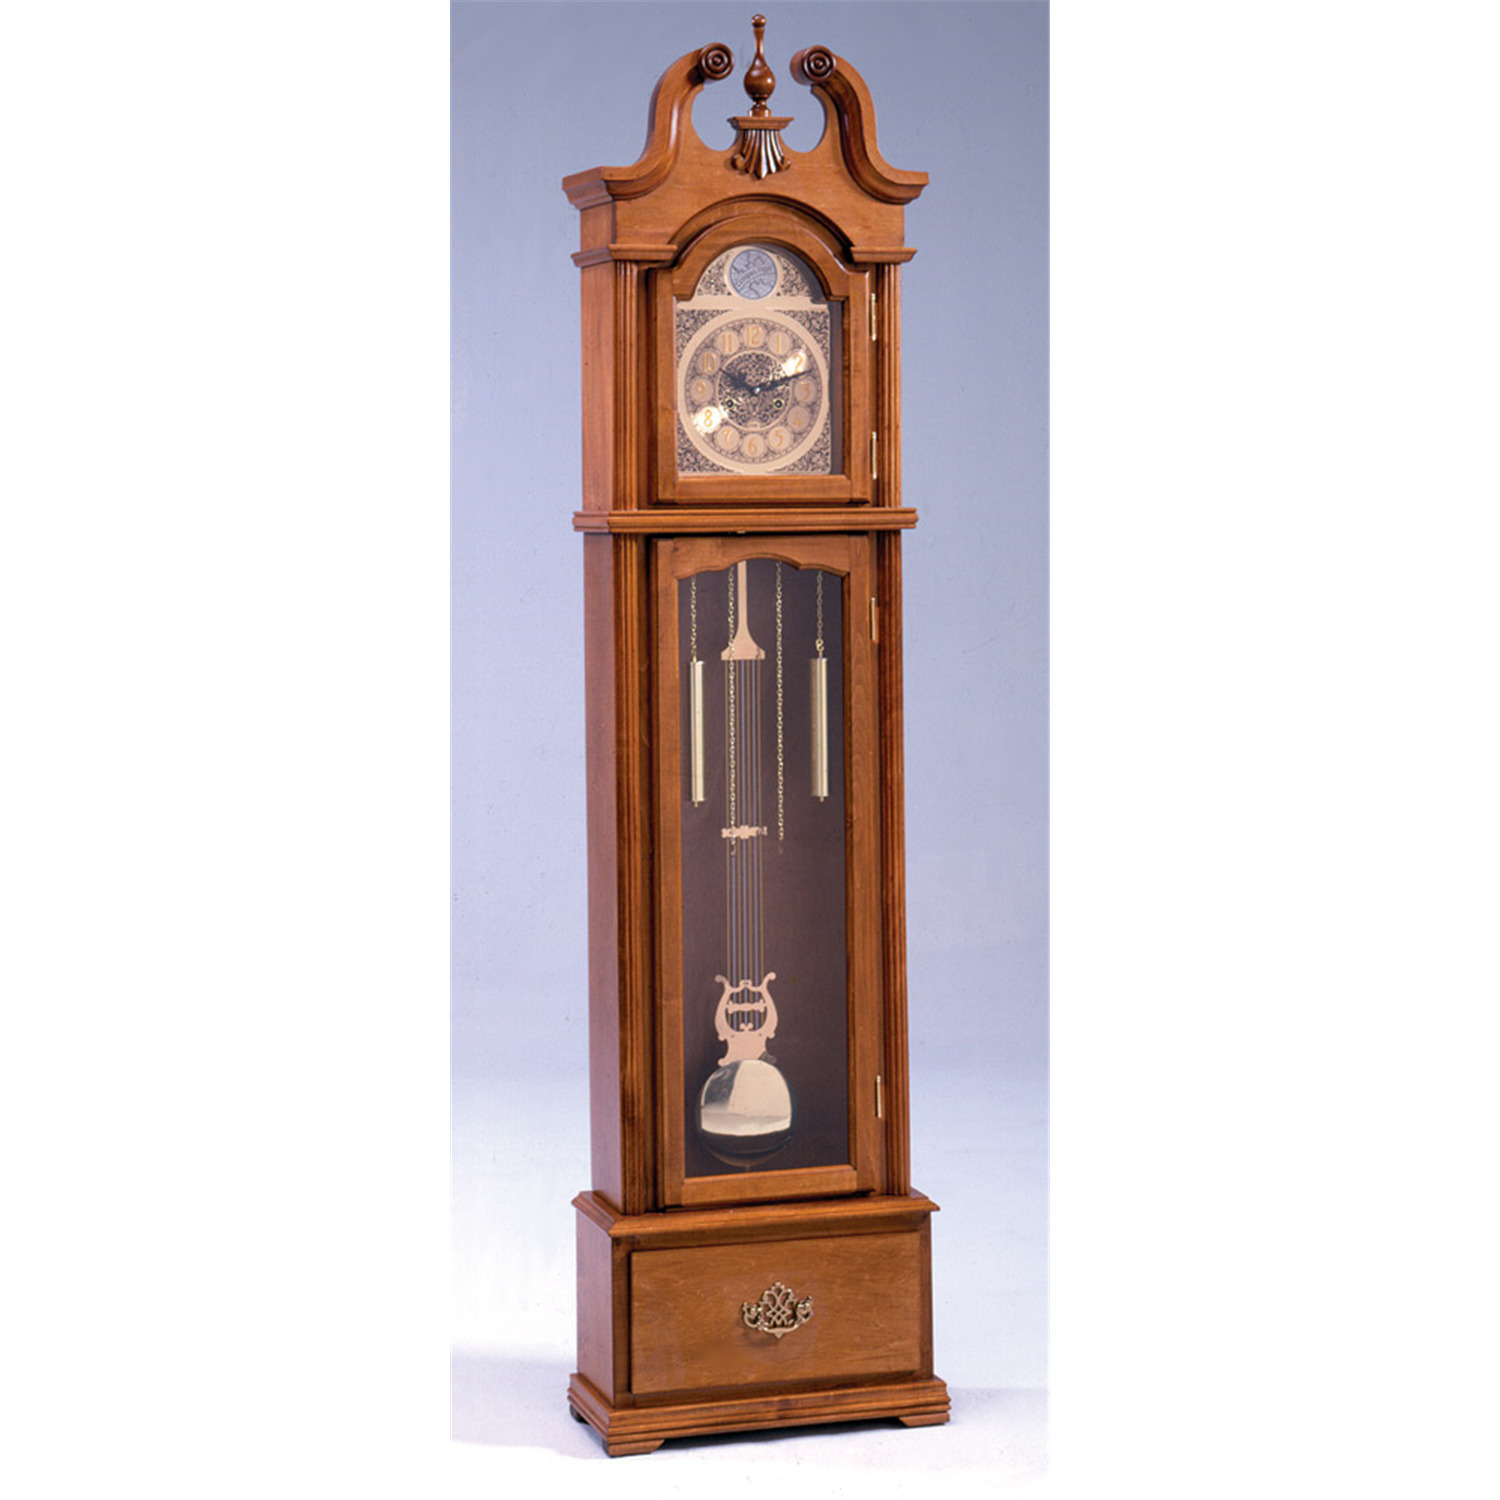 Grandfather Clock Movements http://www.ojcommerce.com/bernards/751516/grandfather_clock_w_quartz_movement